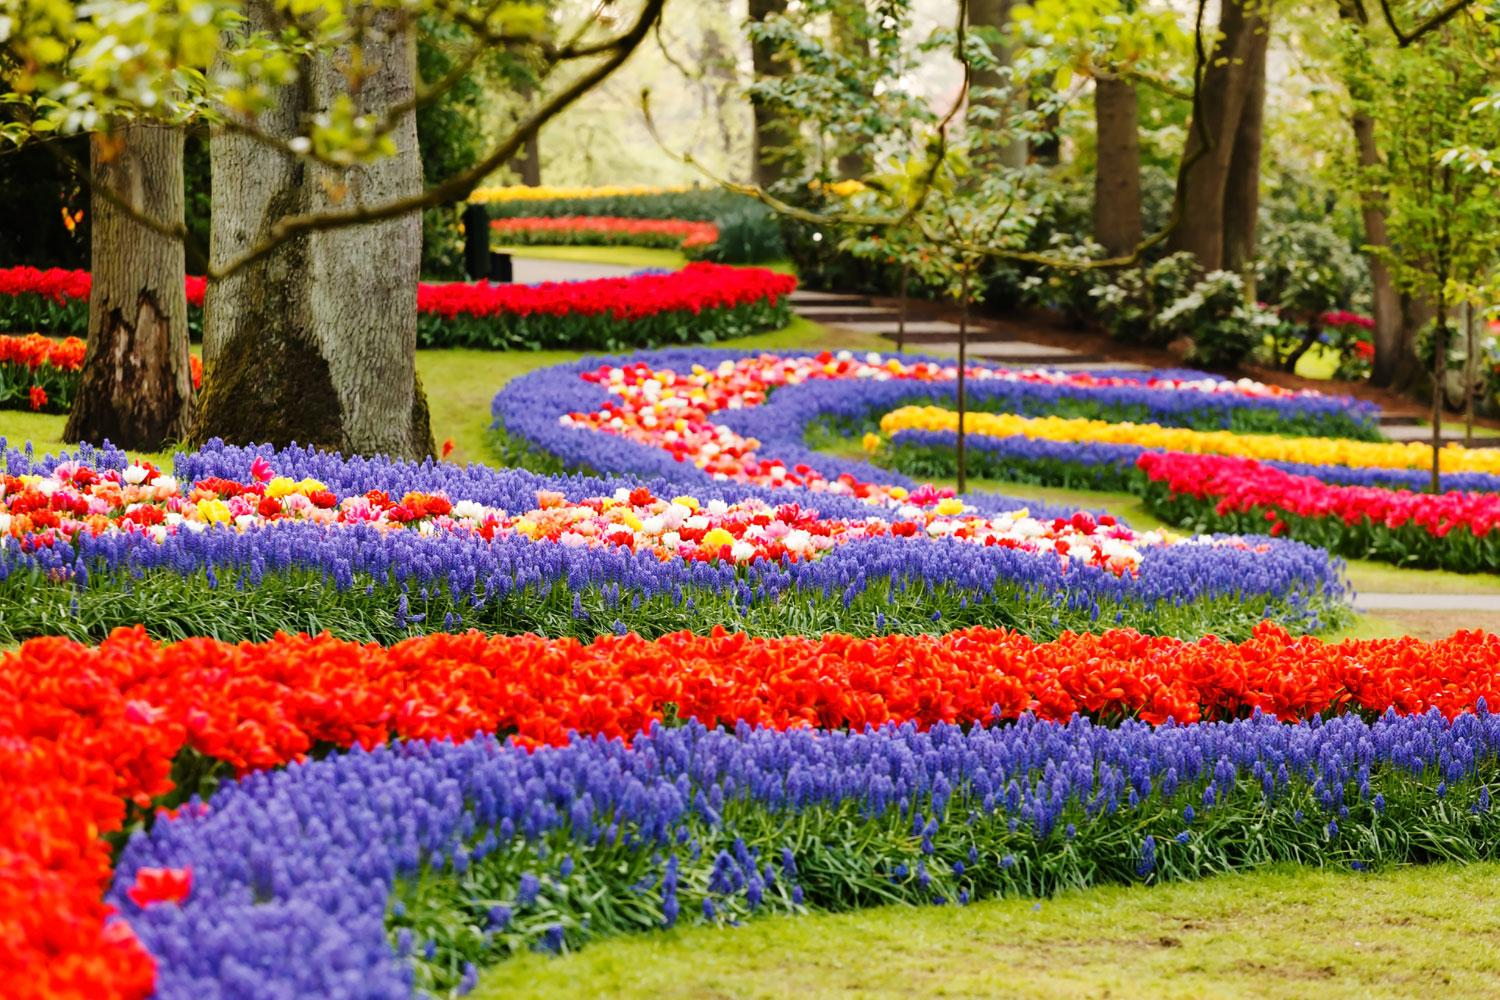 World-famous Keukenhof Flower Gardens